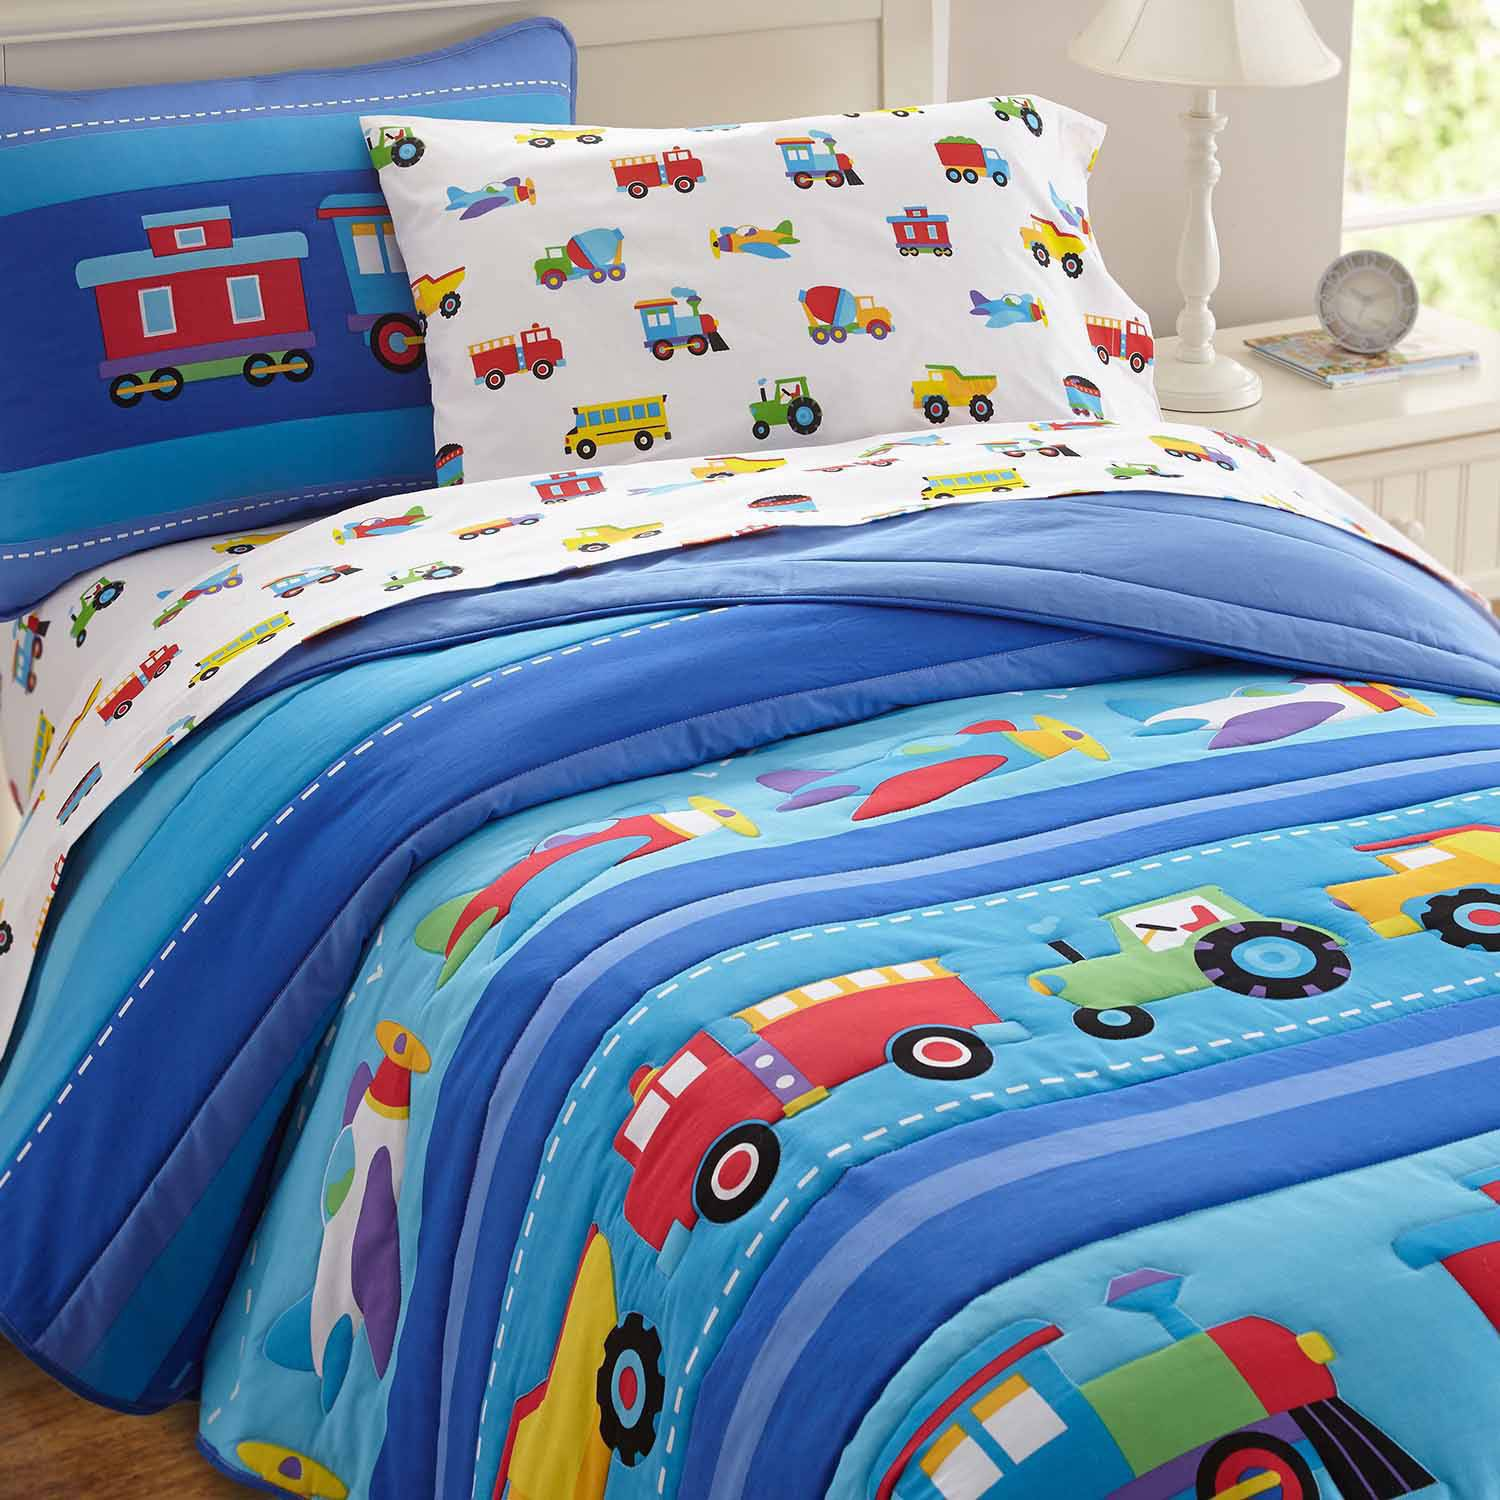 Olive Kids Trains Planes And Trucks Bedding Comforter Set